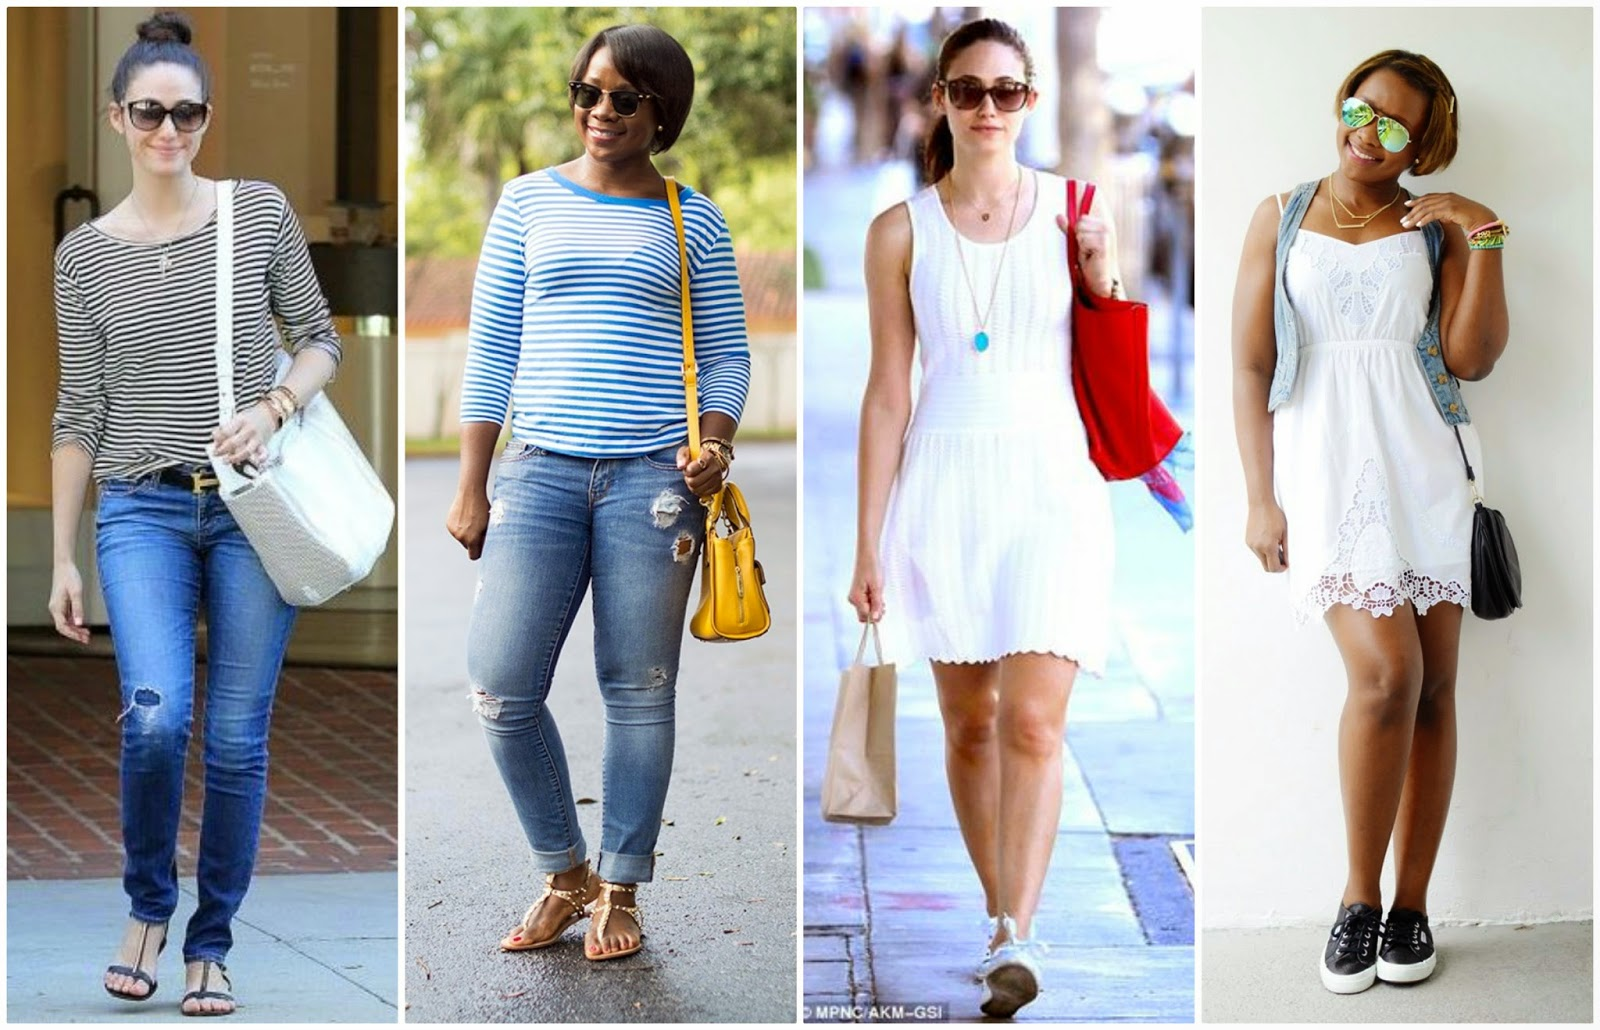 Virgo Style, Emmy Rossum Casual, Striped Tee, Skinny jeans, white dress and sneakers